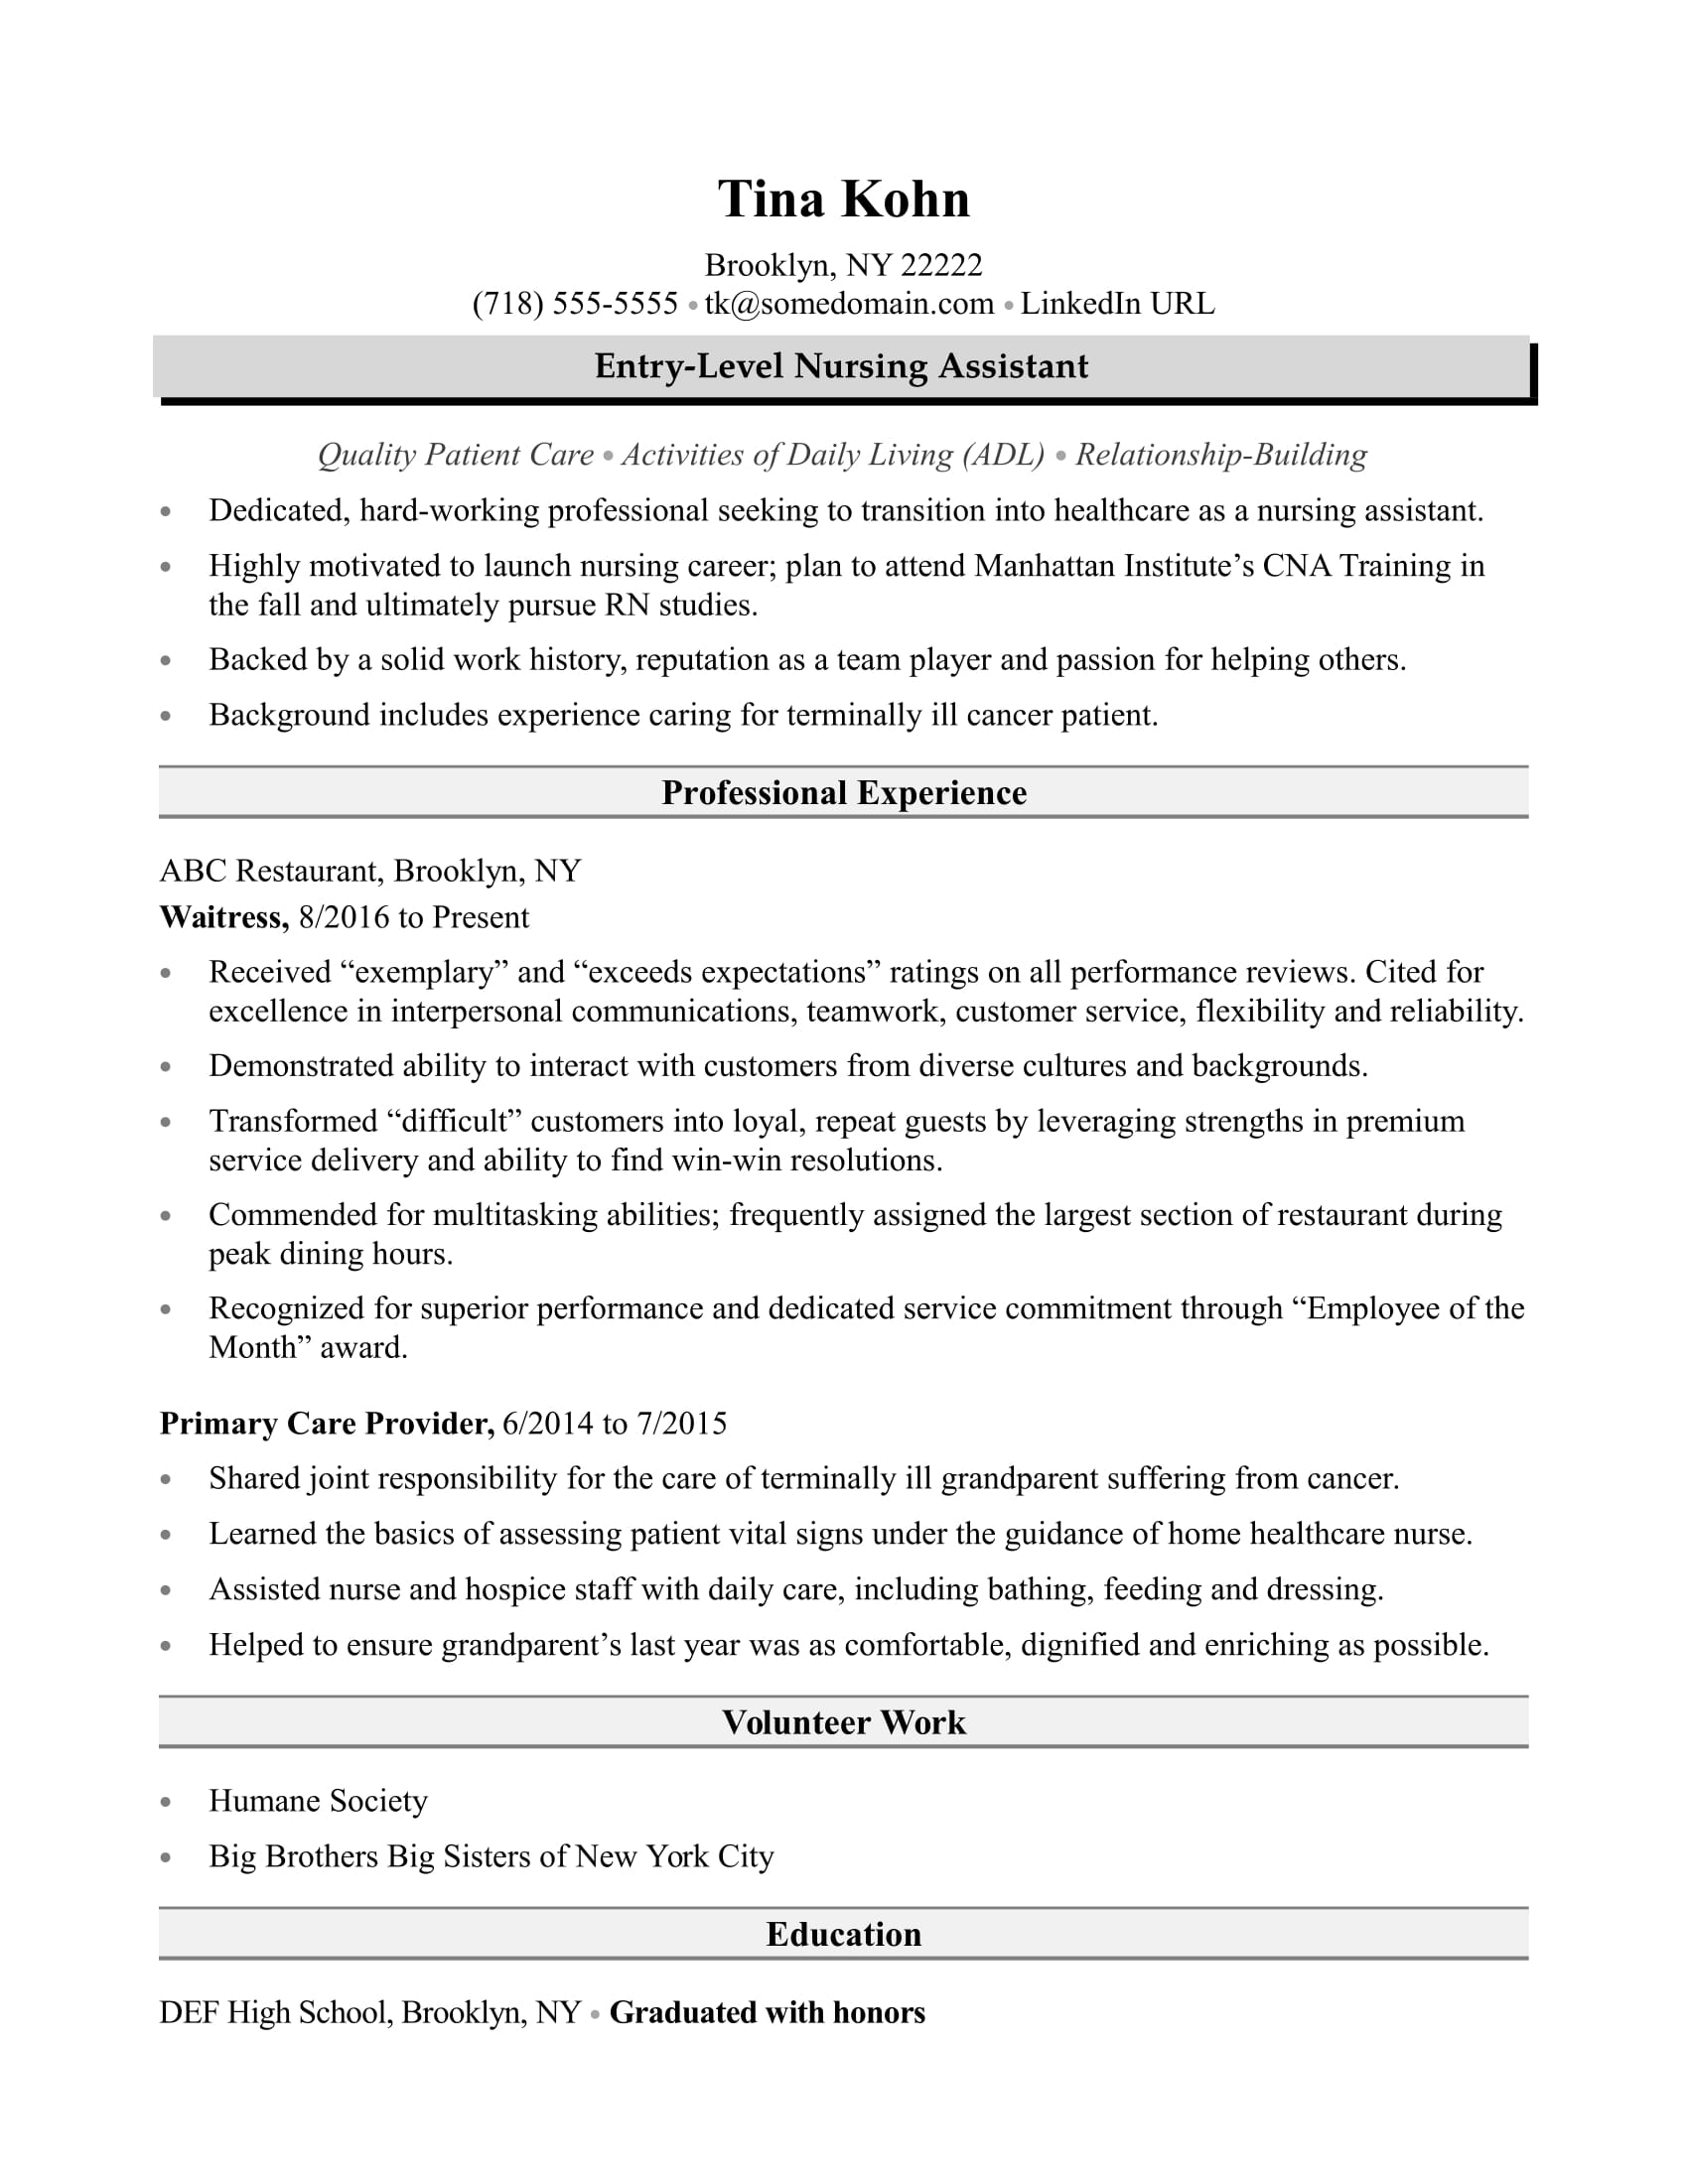 Nursing Assistant Resume Sample  Entry Level Nurse Resume